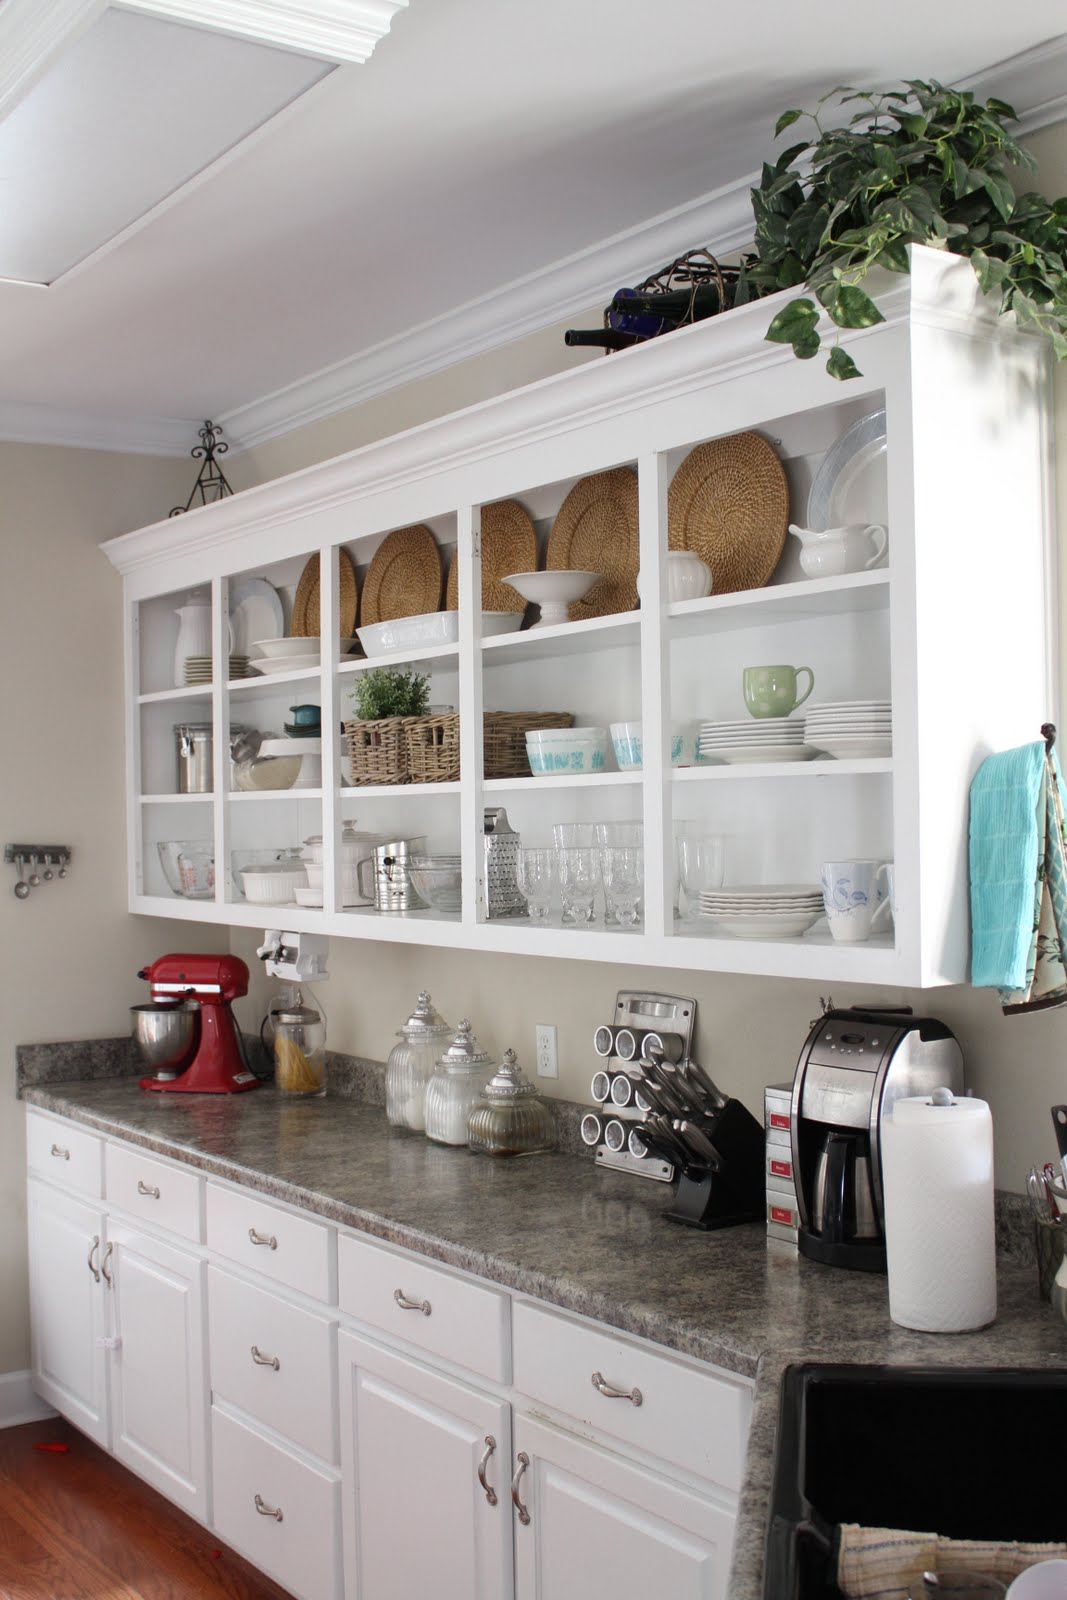 The Benefits Of Open Shelving In The Kitchen: (Lack Of) Progress Report: Kitchen Shelving Units